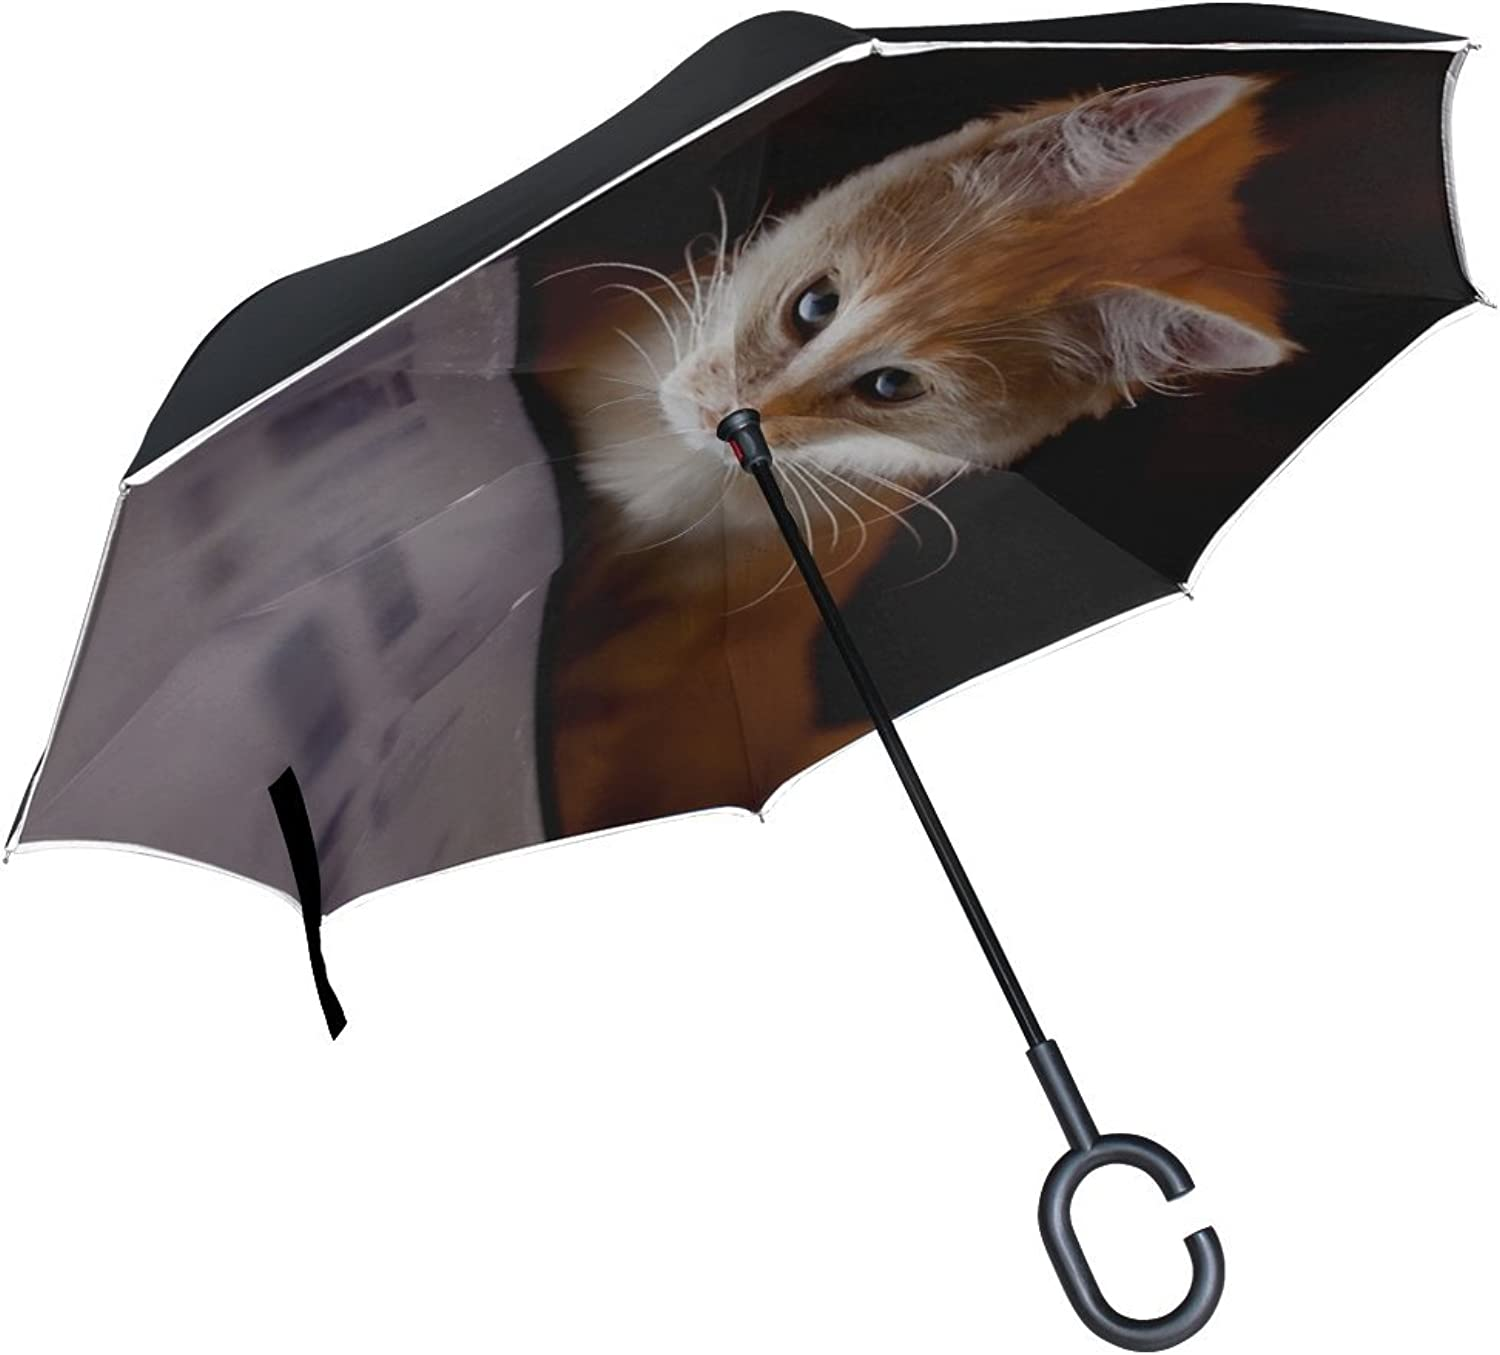 Rh Studio Ingreened Umbrella Cat Computer Curiosity Large Double Layer Outdoor Rain Sun Car Reversible Umbrella